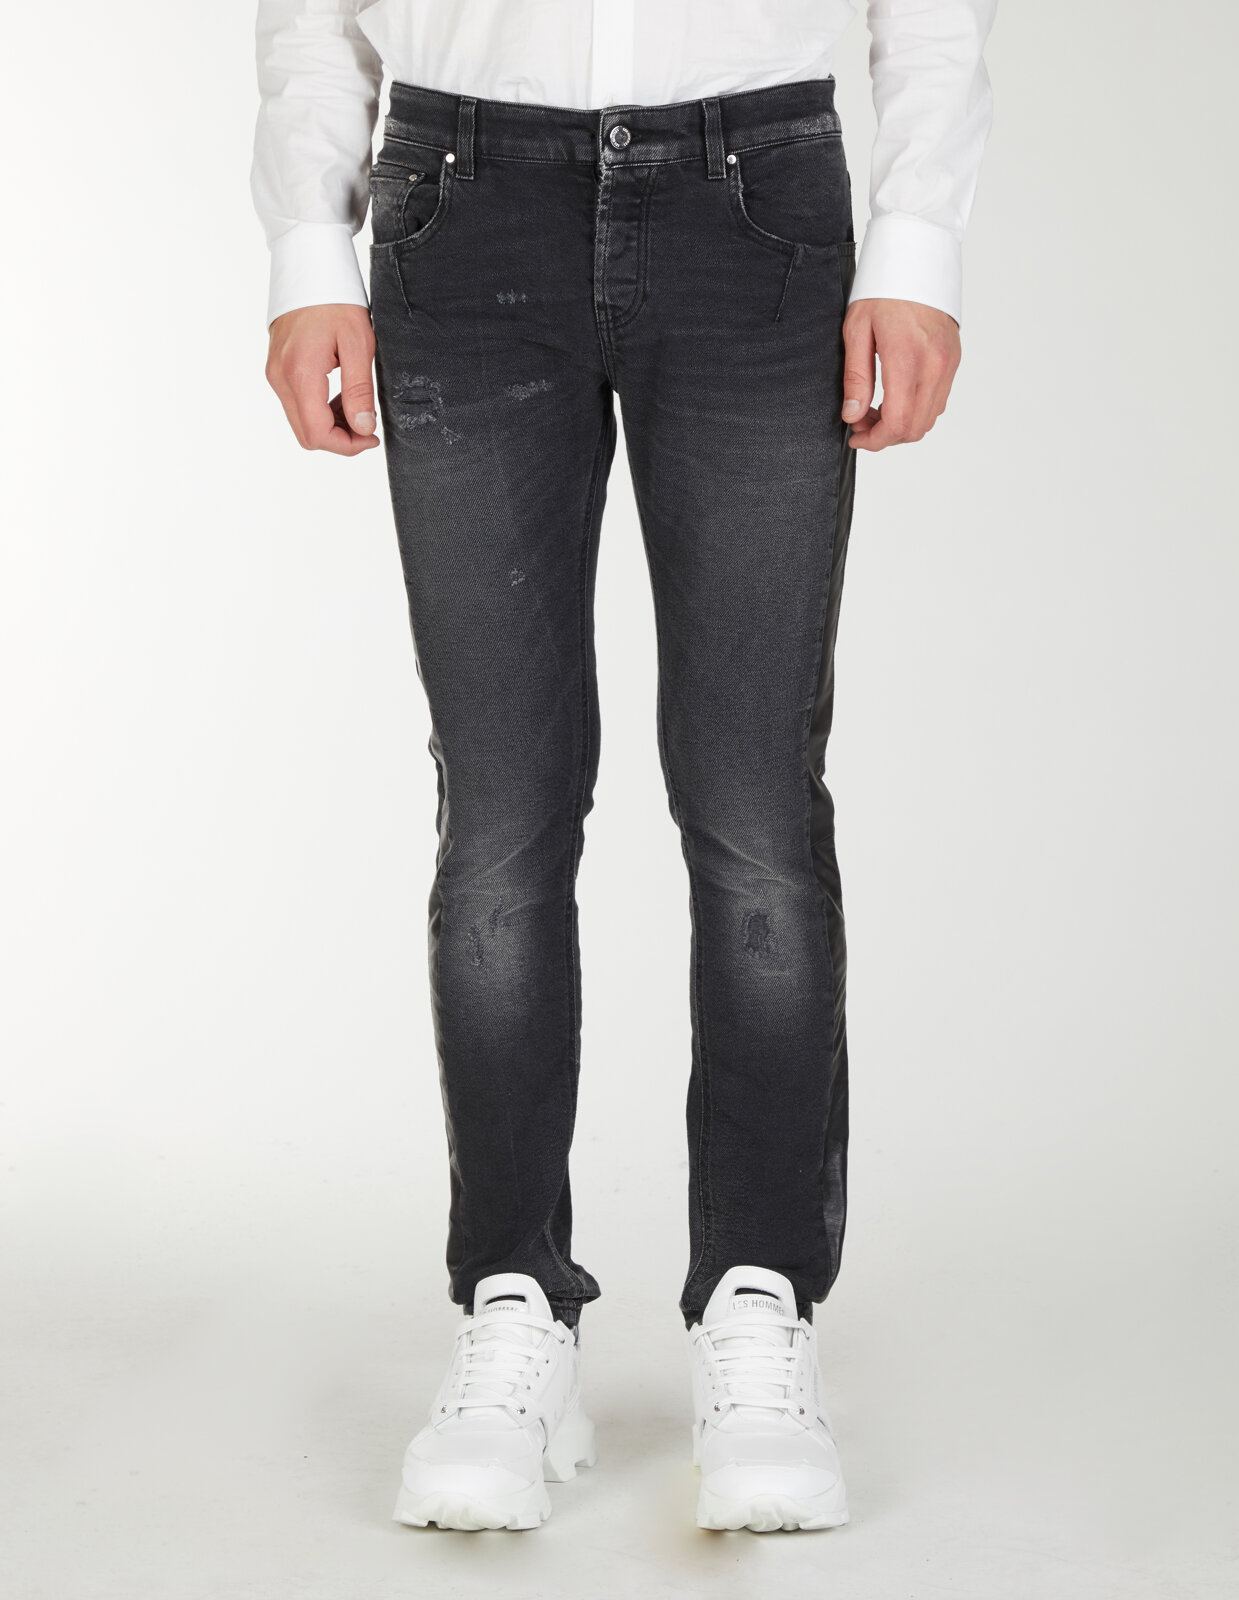 Slim Fit Jeans With Leather Band - Les Hommes